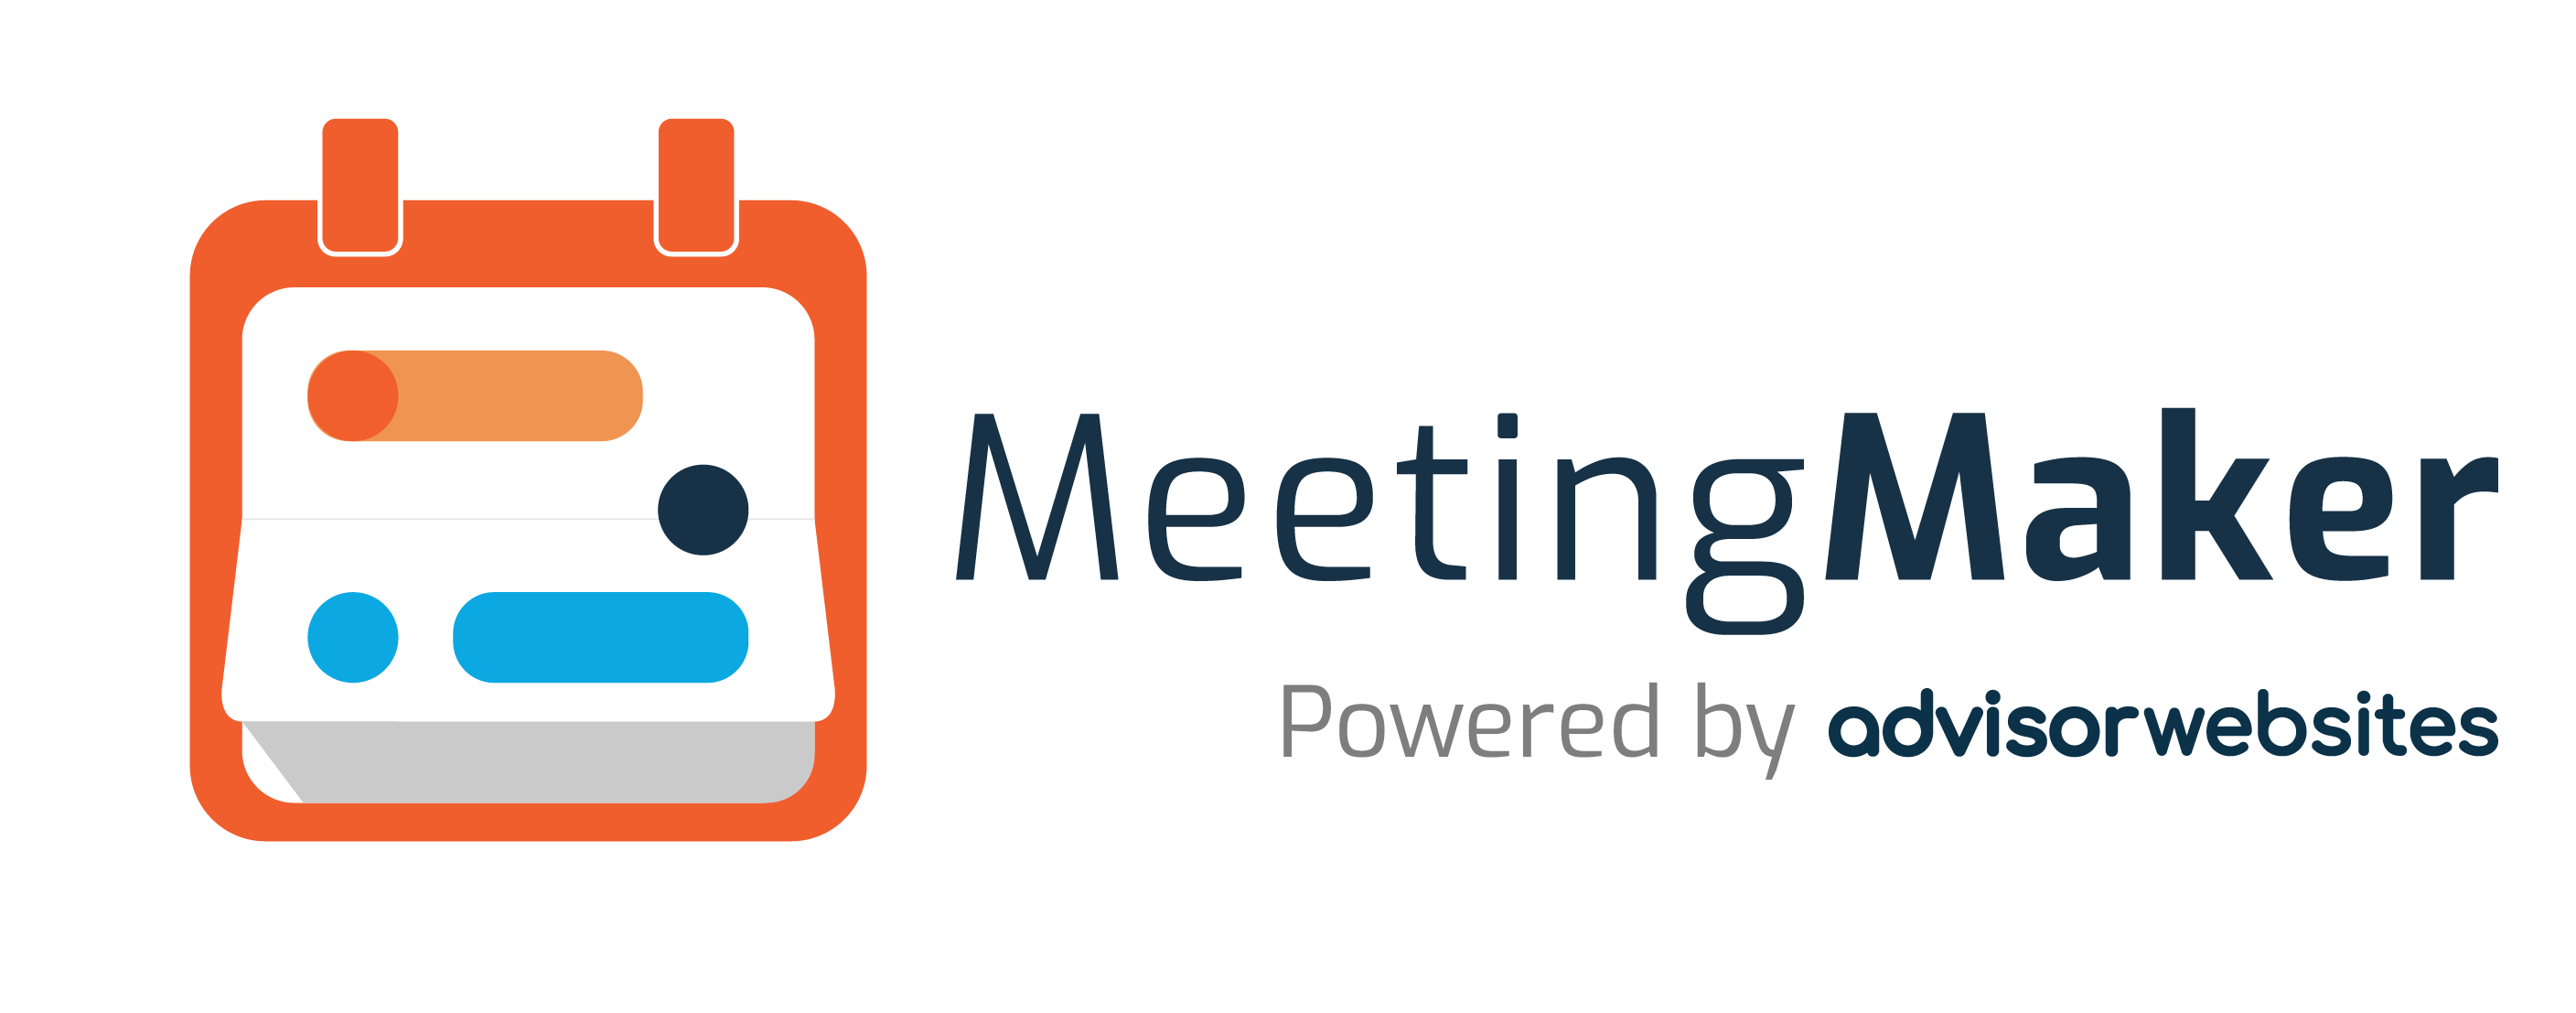 MeetingMaker powered by Advisor Websites